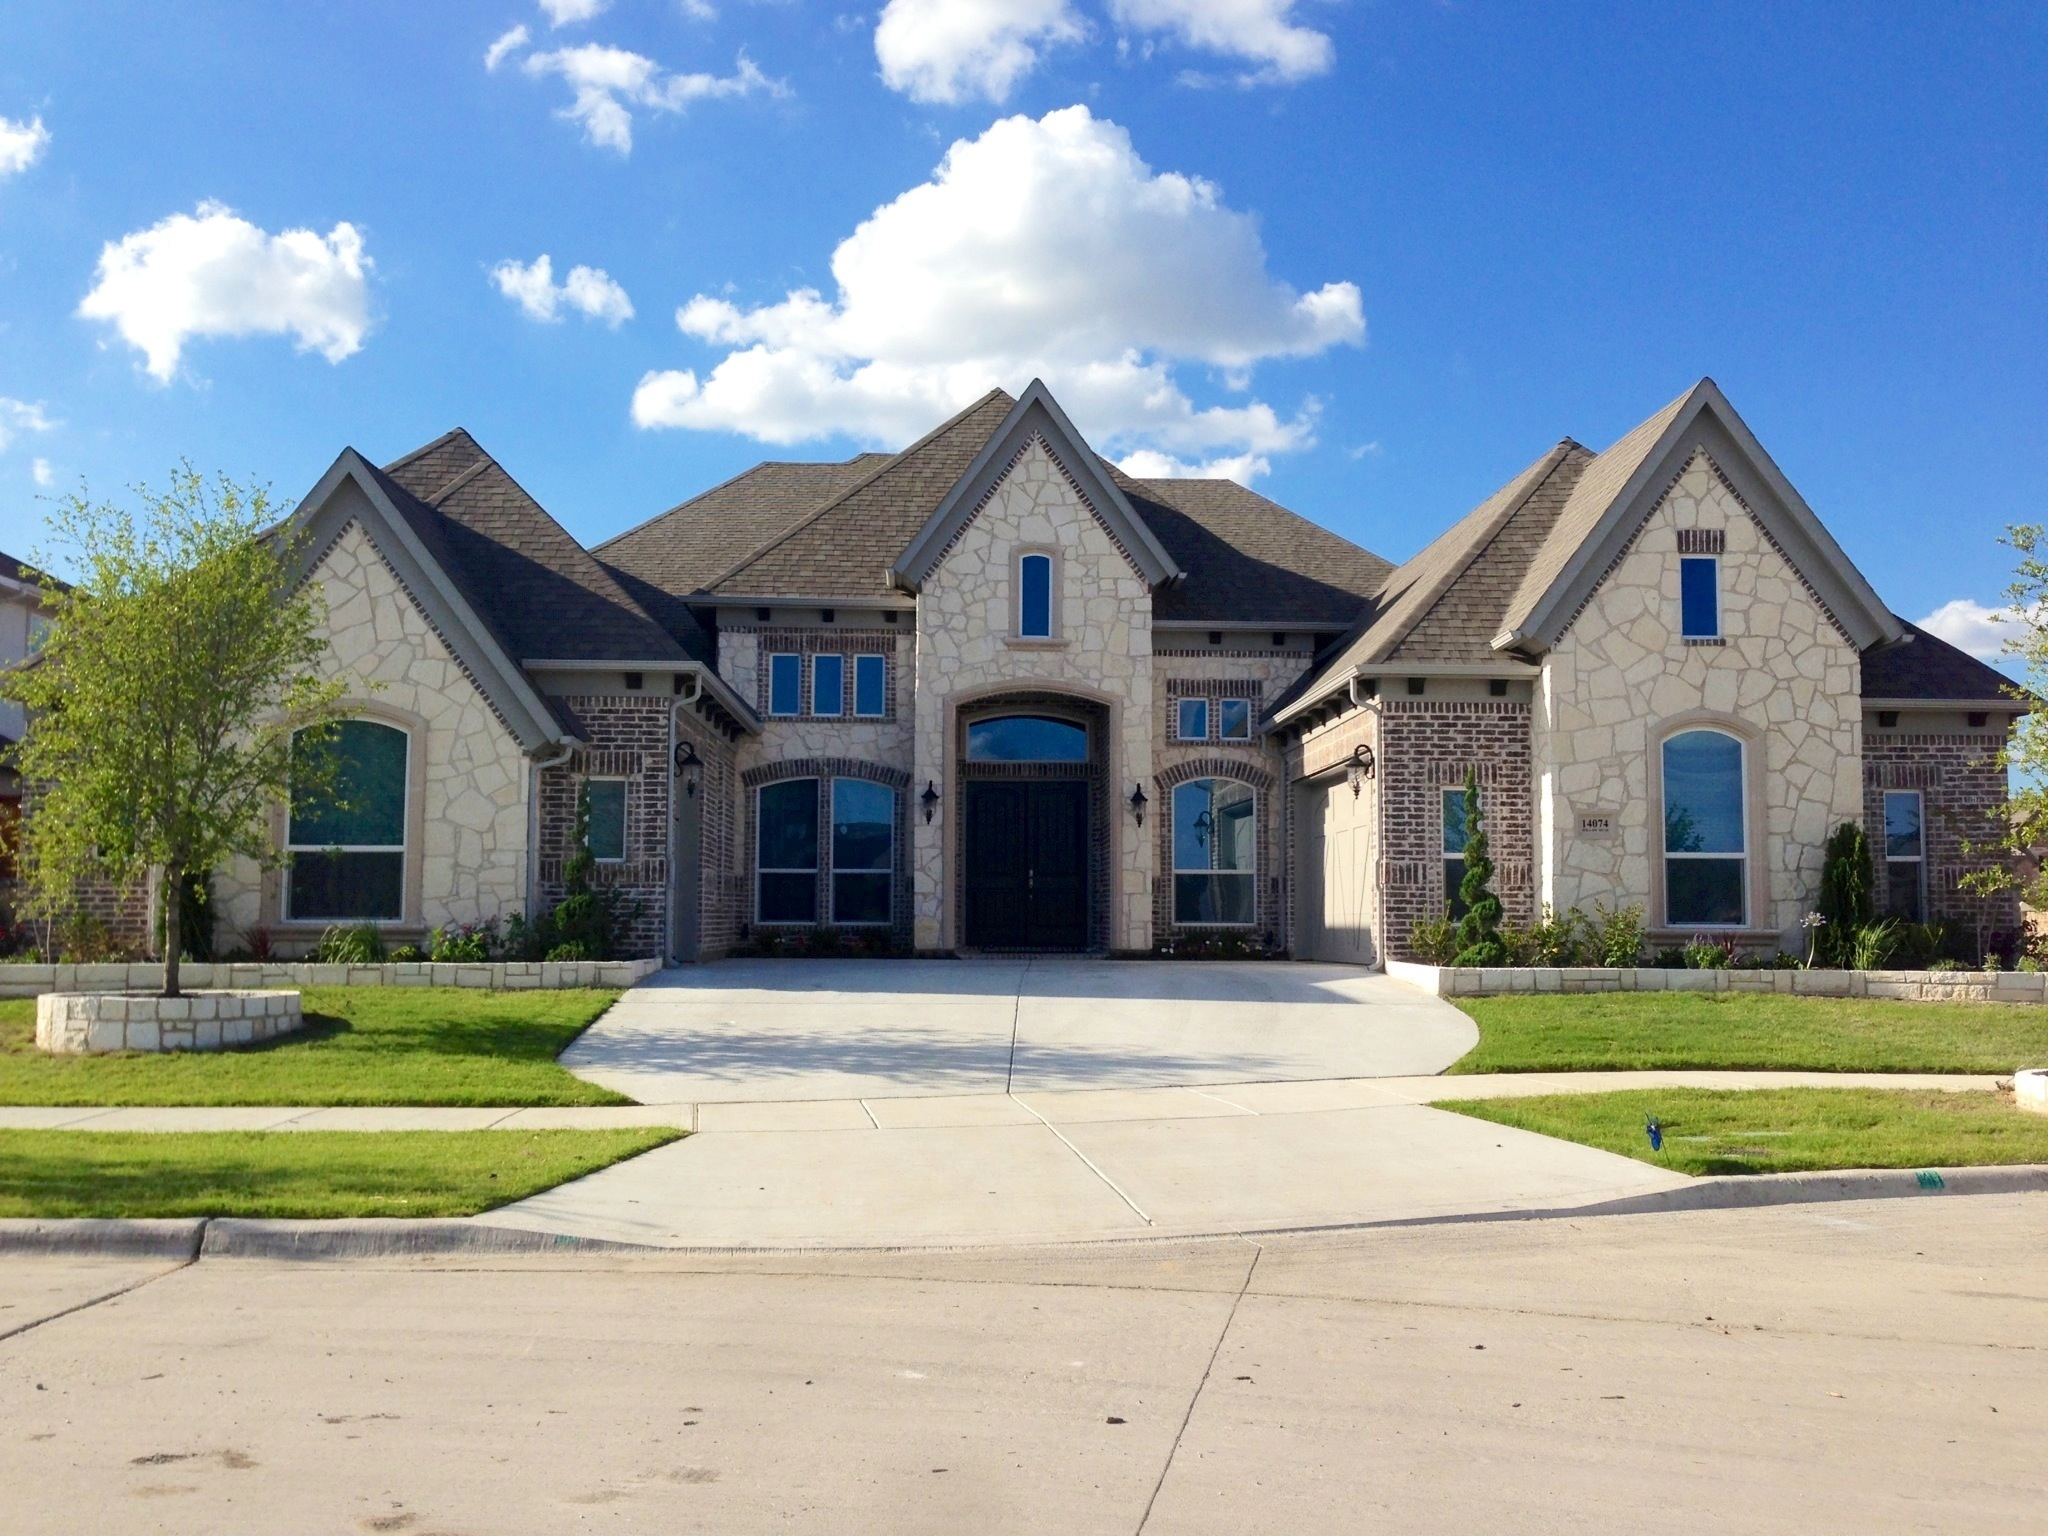 4,000 Foot One-story In Richwoods In Frisco